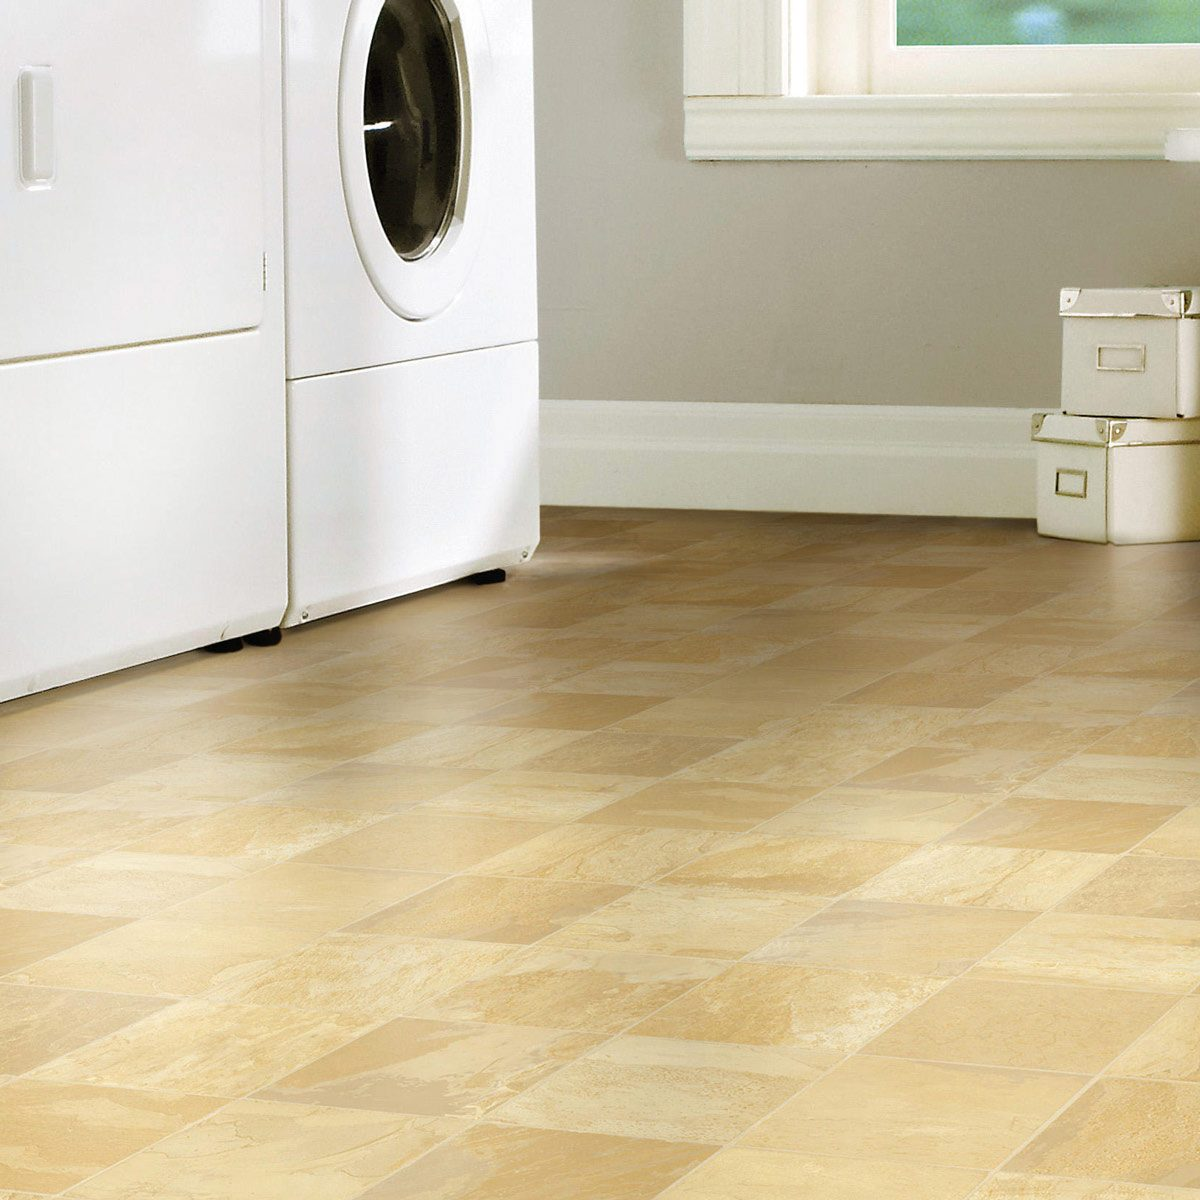 vinyl-tile-laundry-room